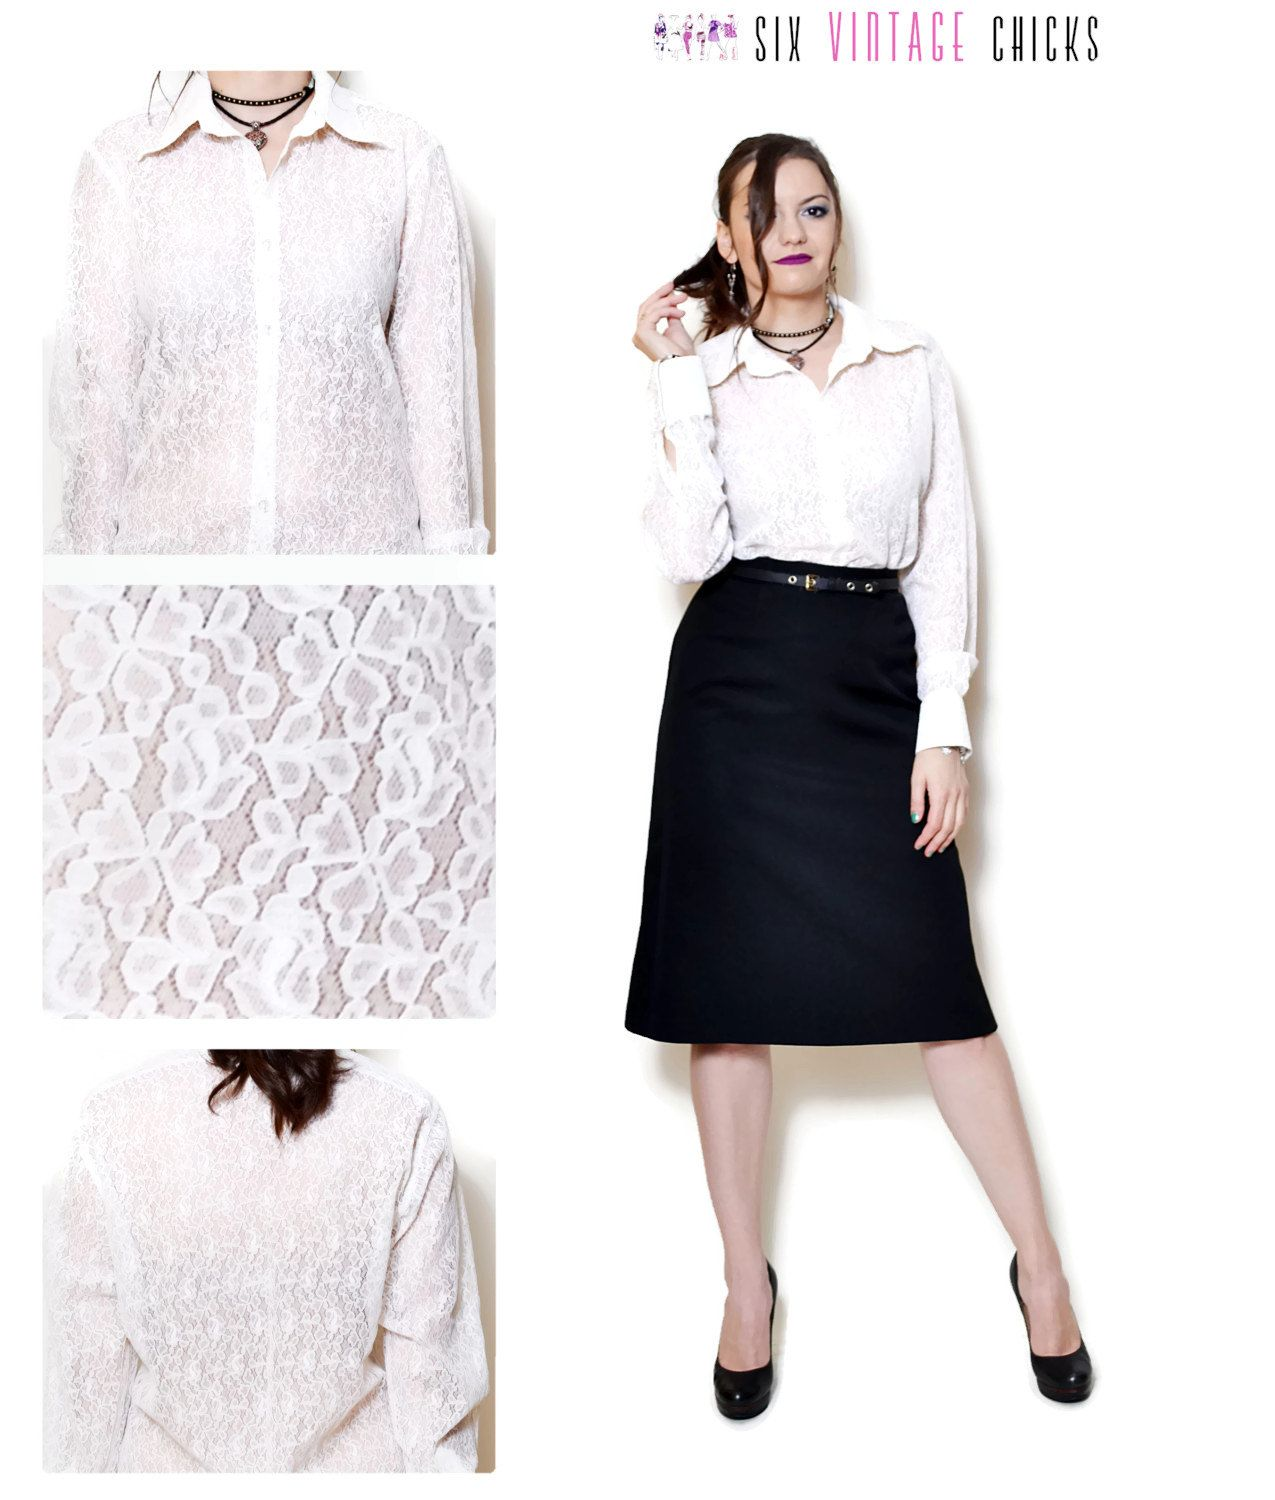 348a722c387 lace shirt women floral pattern sexy tops folk blouse 80s clothing white  blouse long sleeve shirt button down retro boho chic Size S by  SixVintageChicks on ...